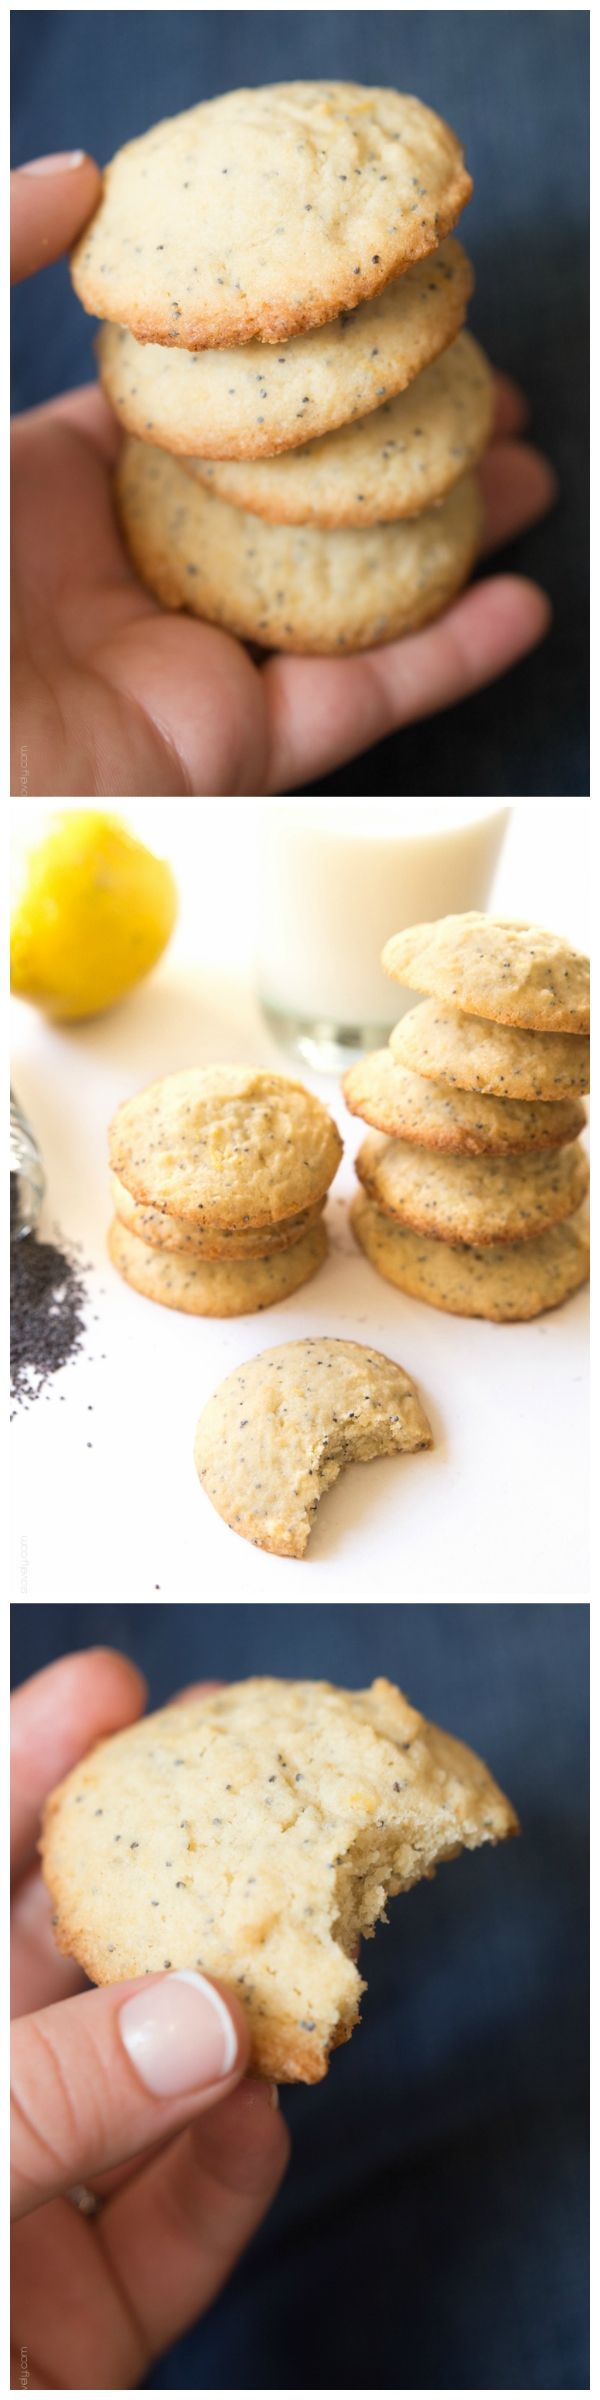 Lemon Poppy Seed Cookies - the perfect cookie for spring!